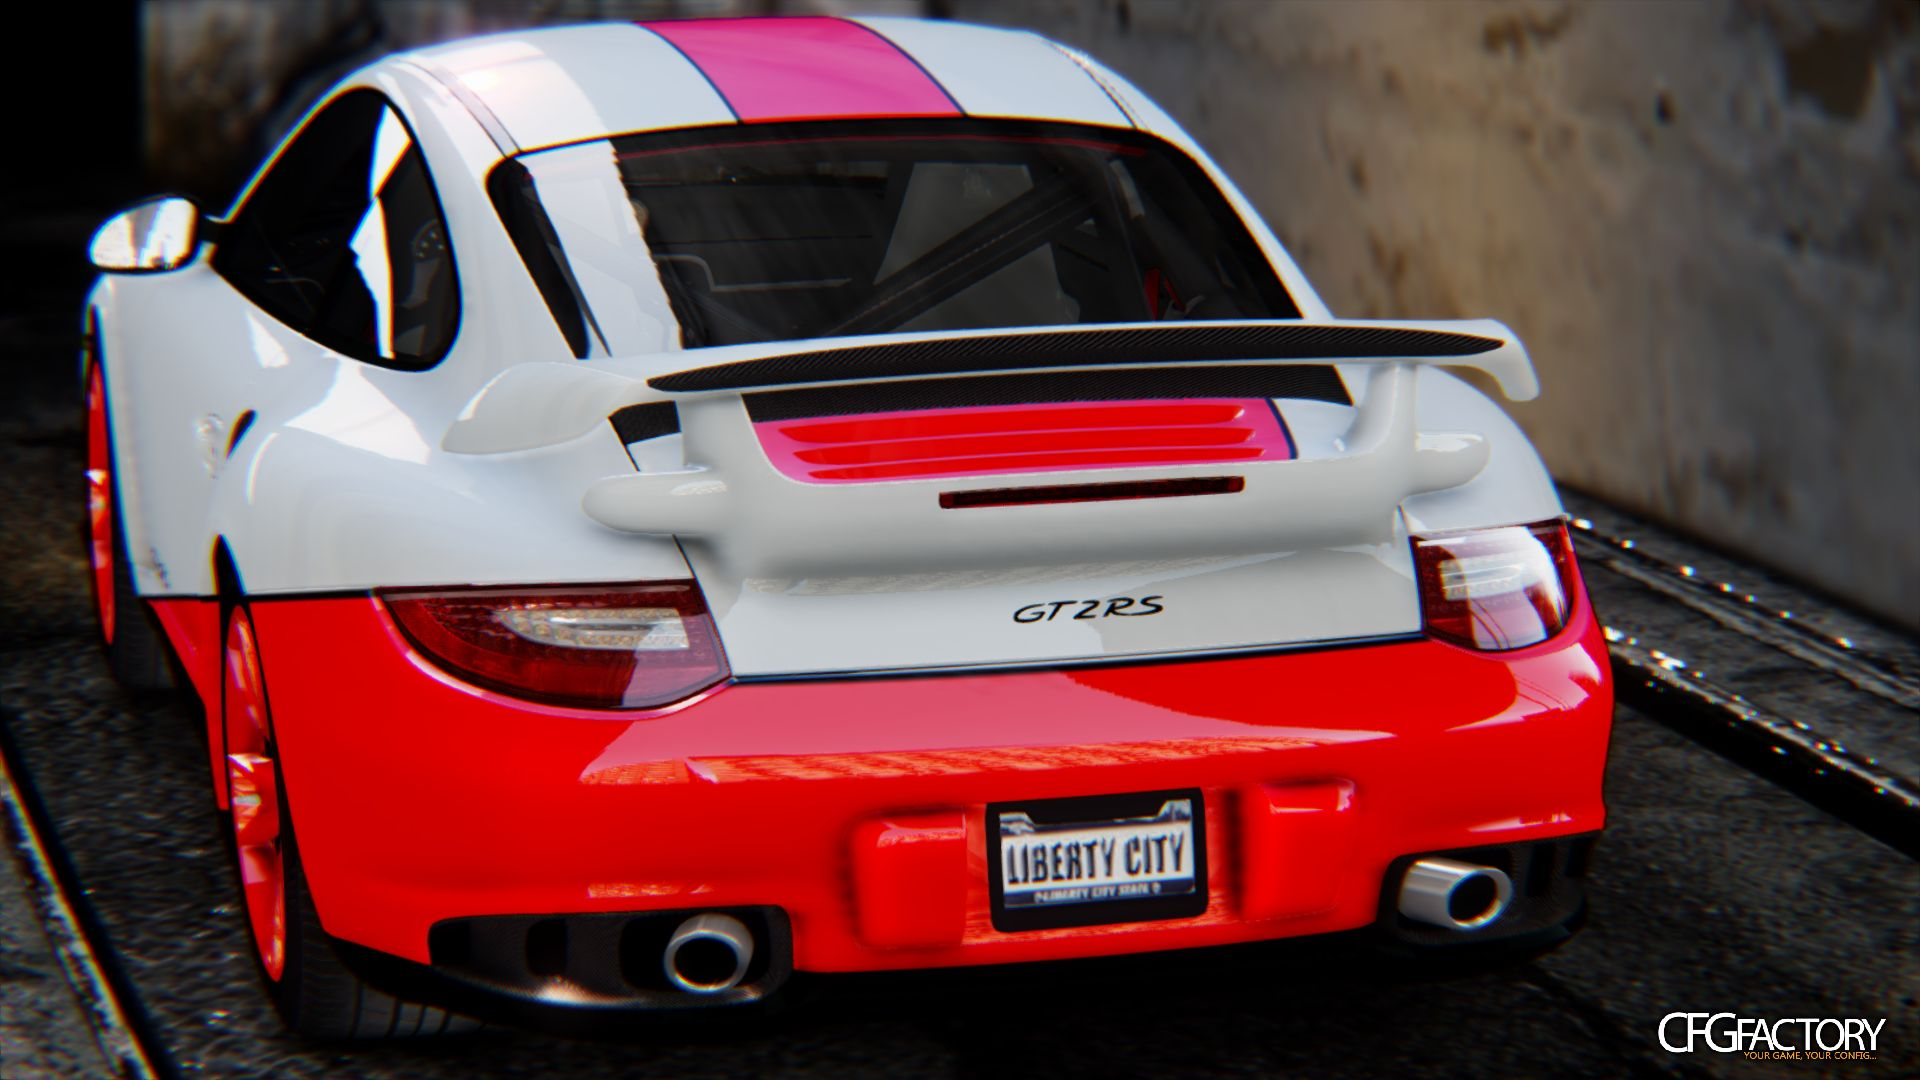 2012 porsche 911 gt2 rs red paintjob download cfgfactory. Black Bedroom Furniture Sets. Home Design Ideas